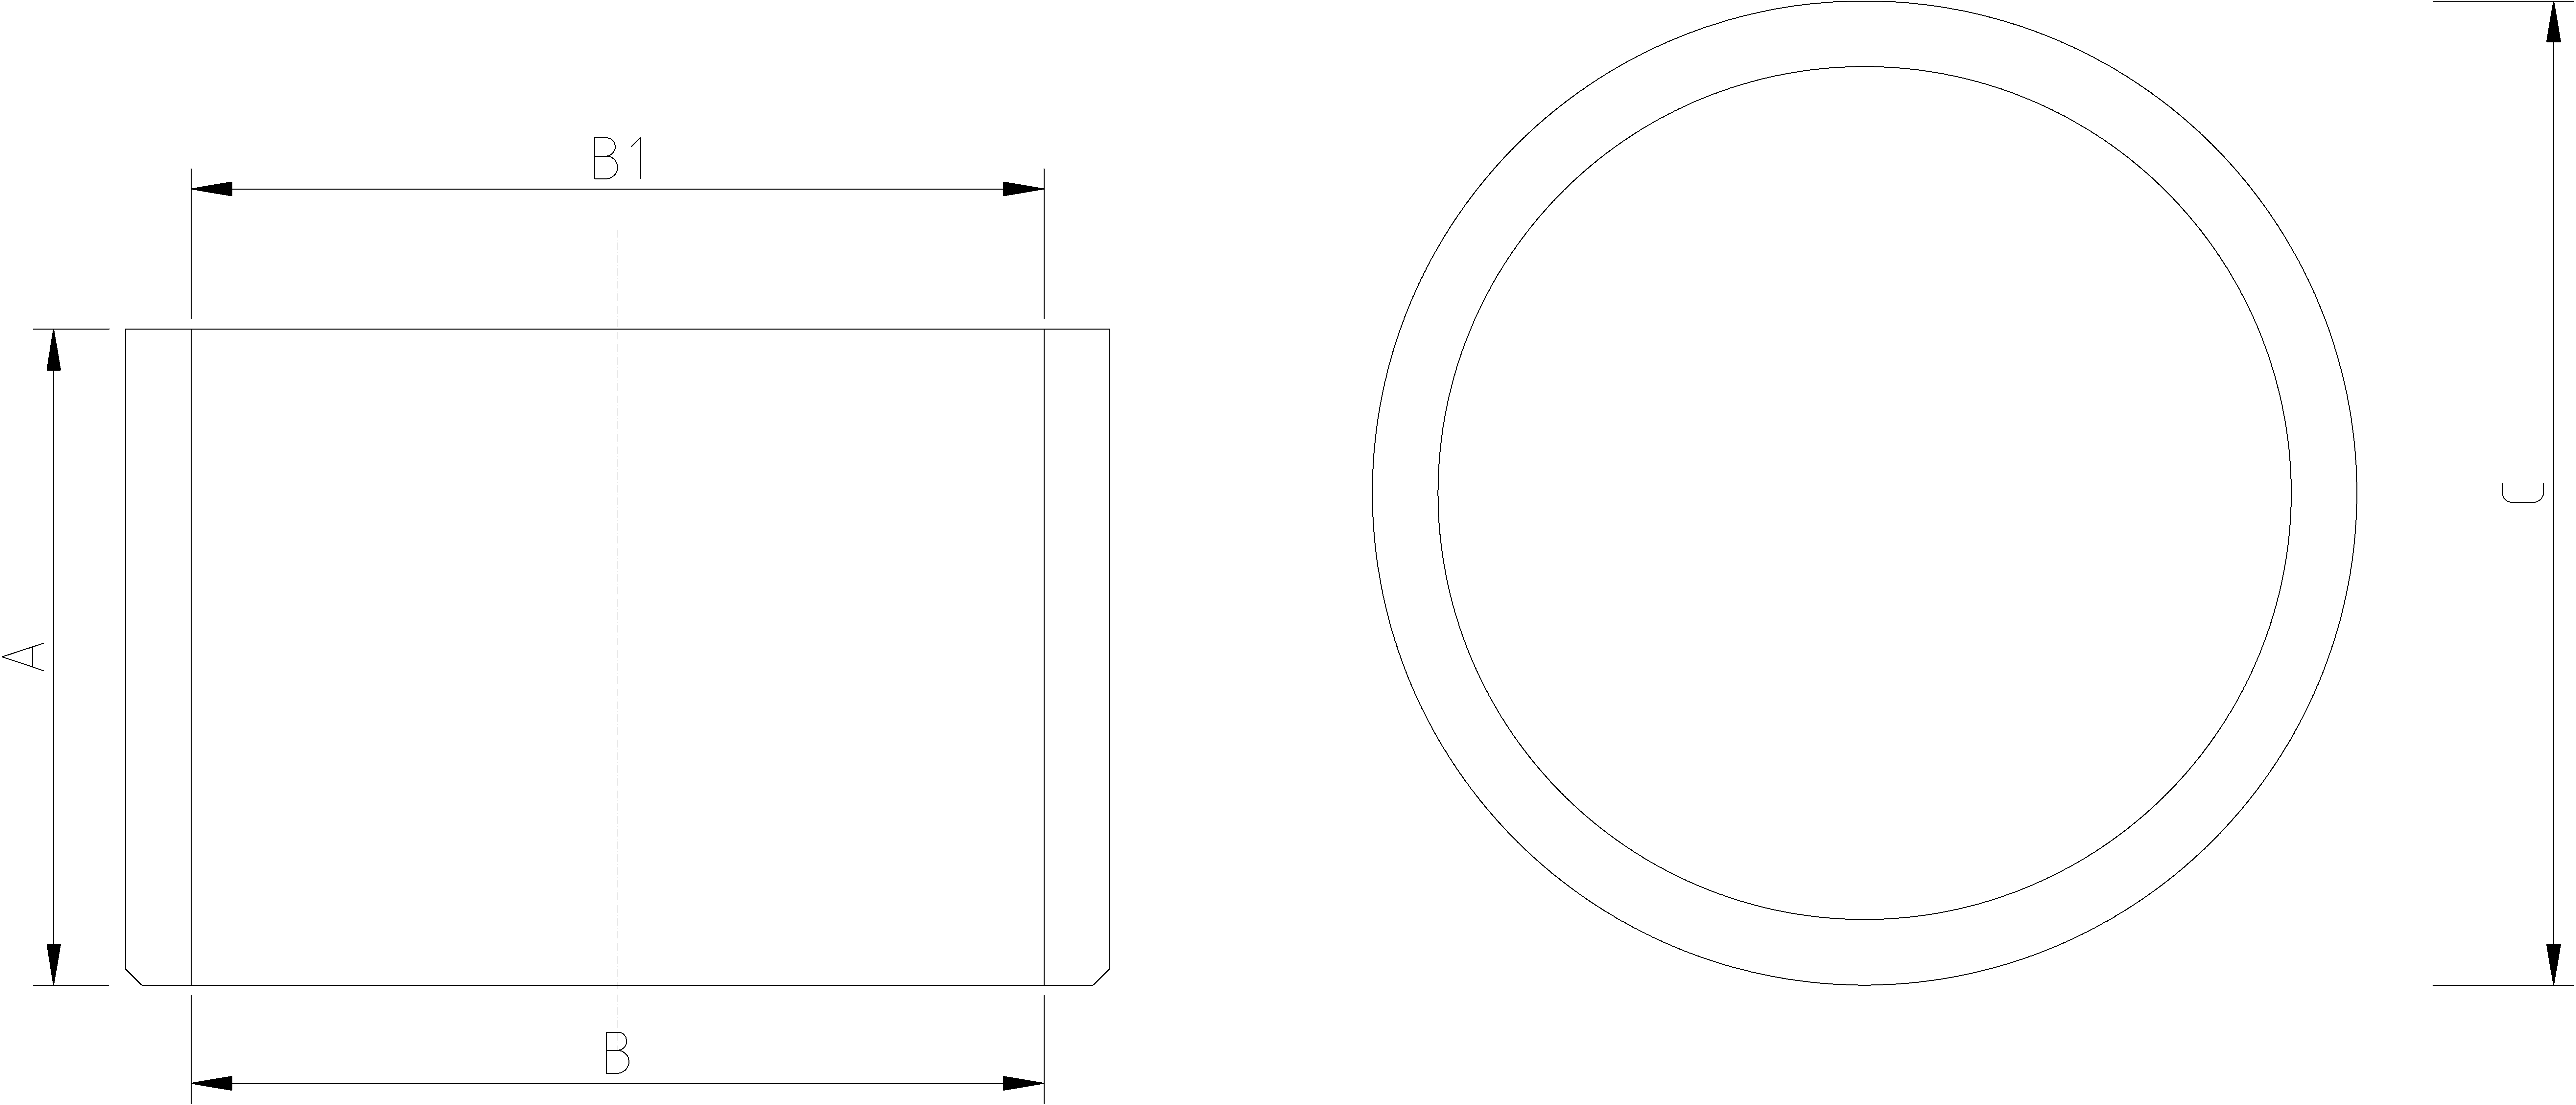 8 to 6 Inch Reducing Bush Dimensions Drawing